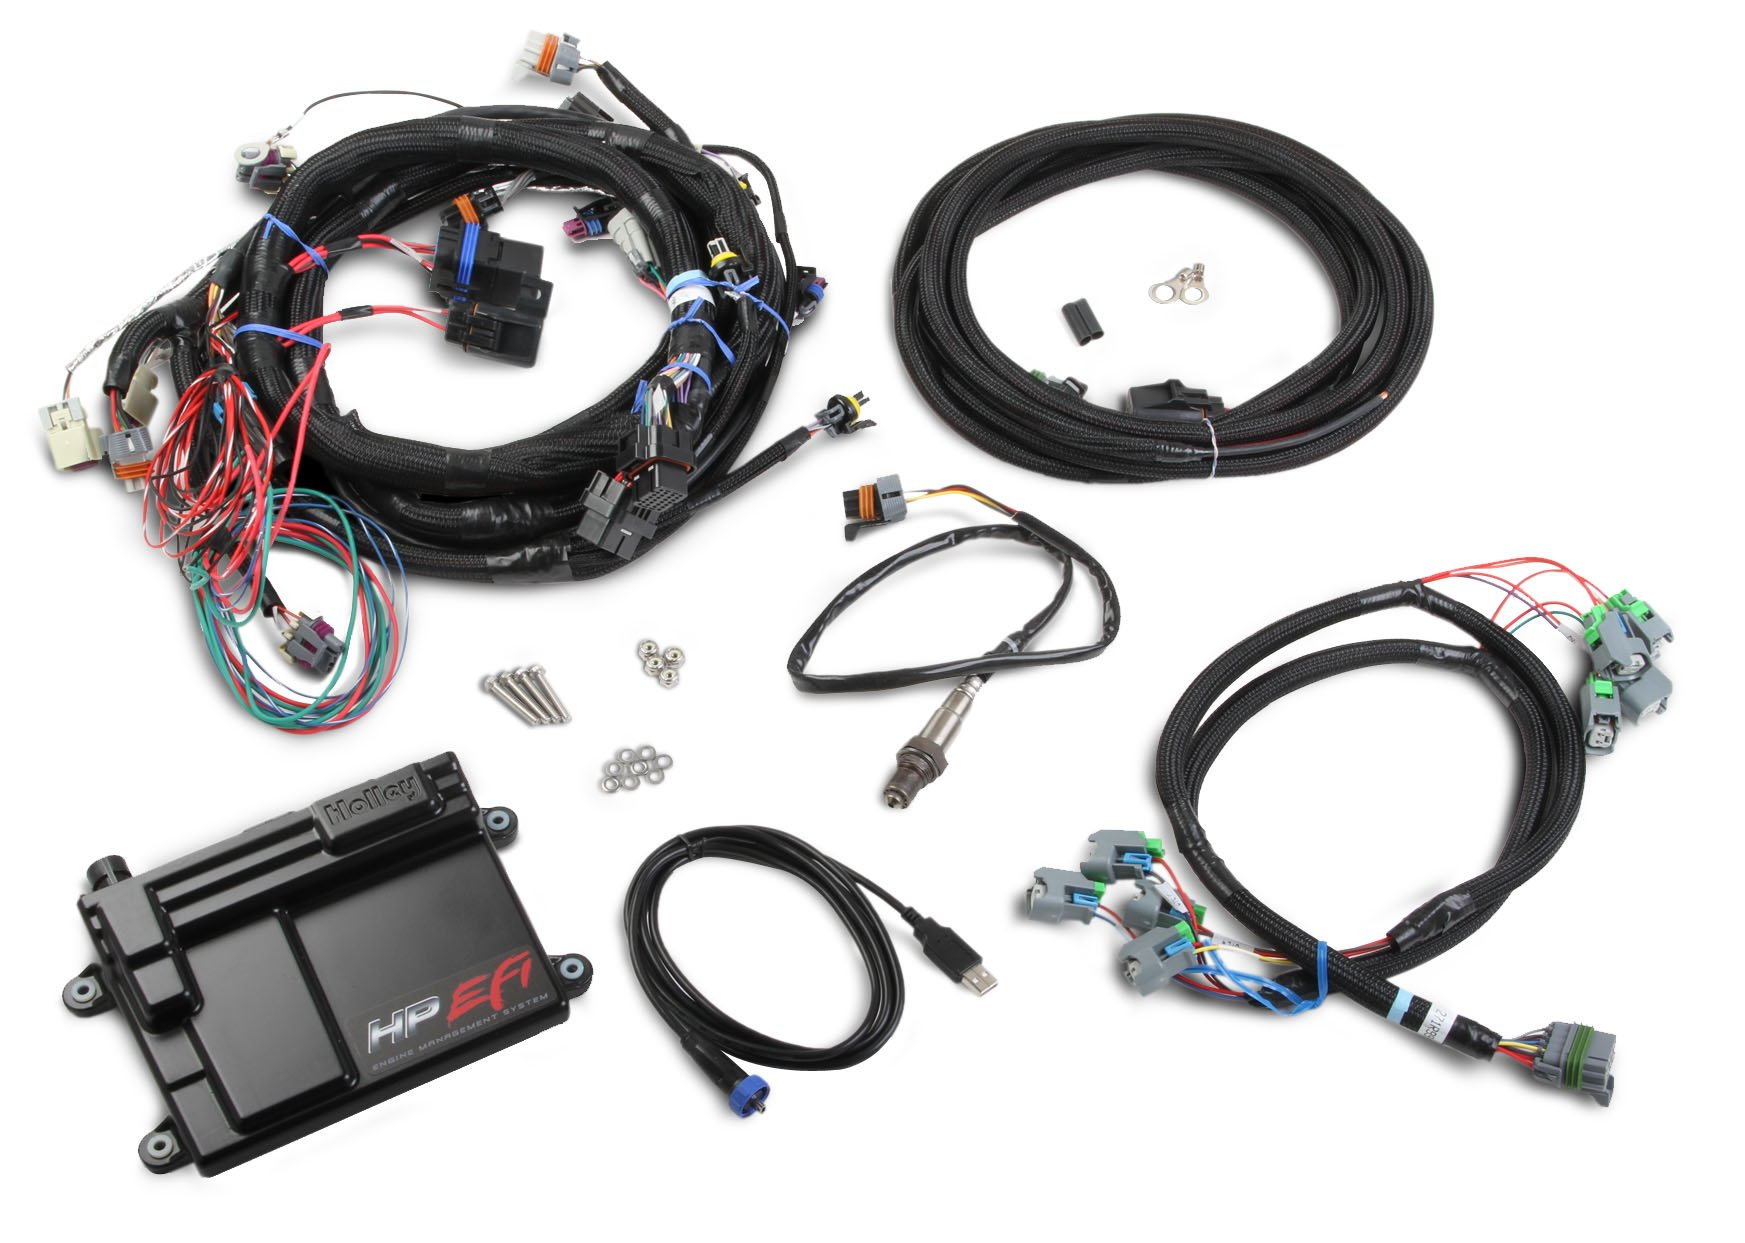 550 603 holley efi 550 603 hp efi ecu & harness kits holley ls wiring harness at bakdesigns.co